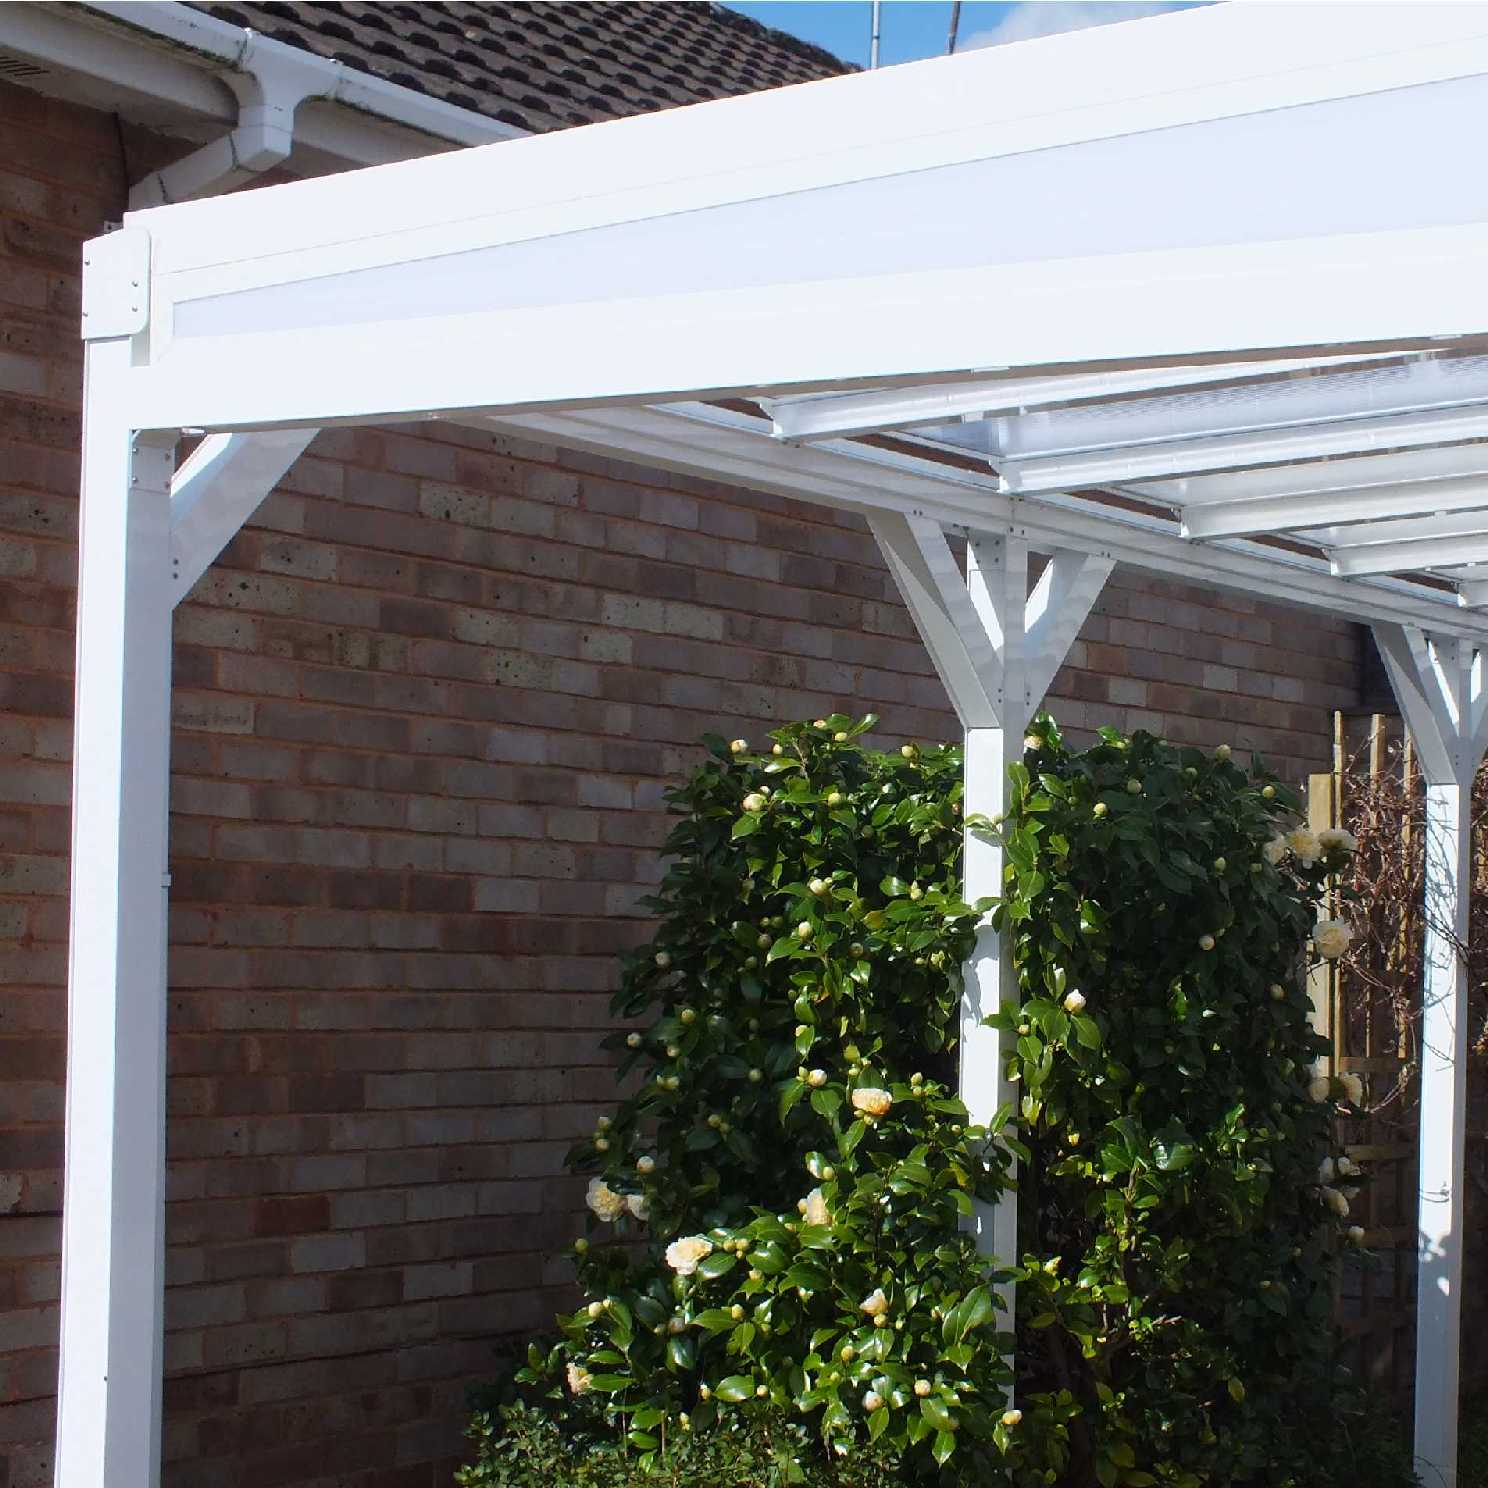 Omega Smart White Lean-To Canopy with 16mm Polycarbonate Glazing - 6.0m (W) x 3.0m (P), (3) Supporting Posts from Omega Build